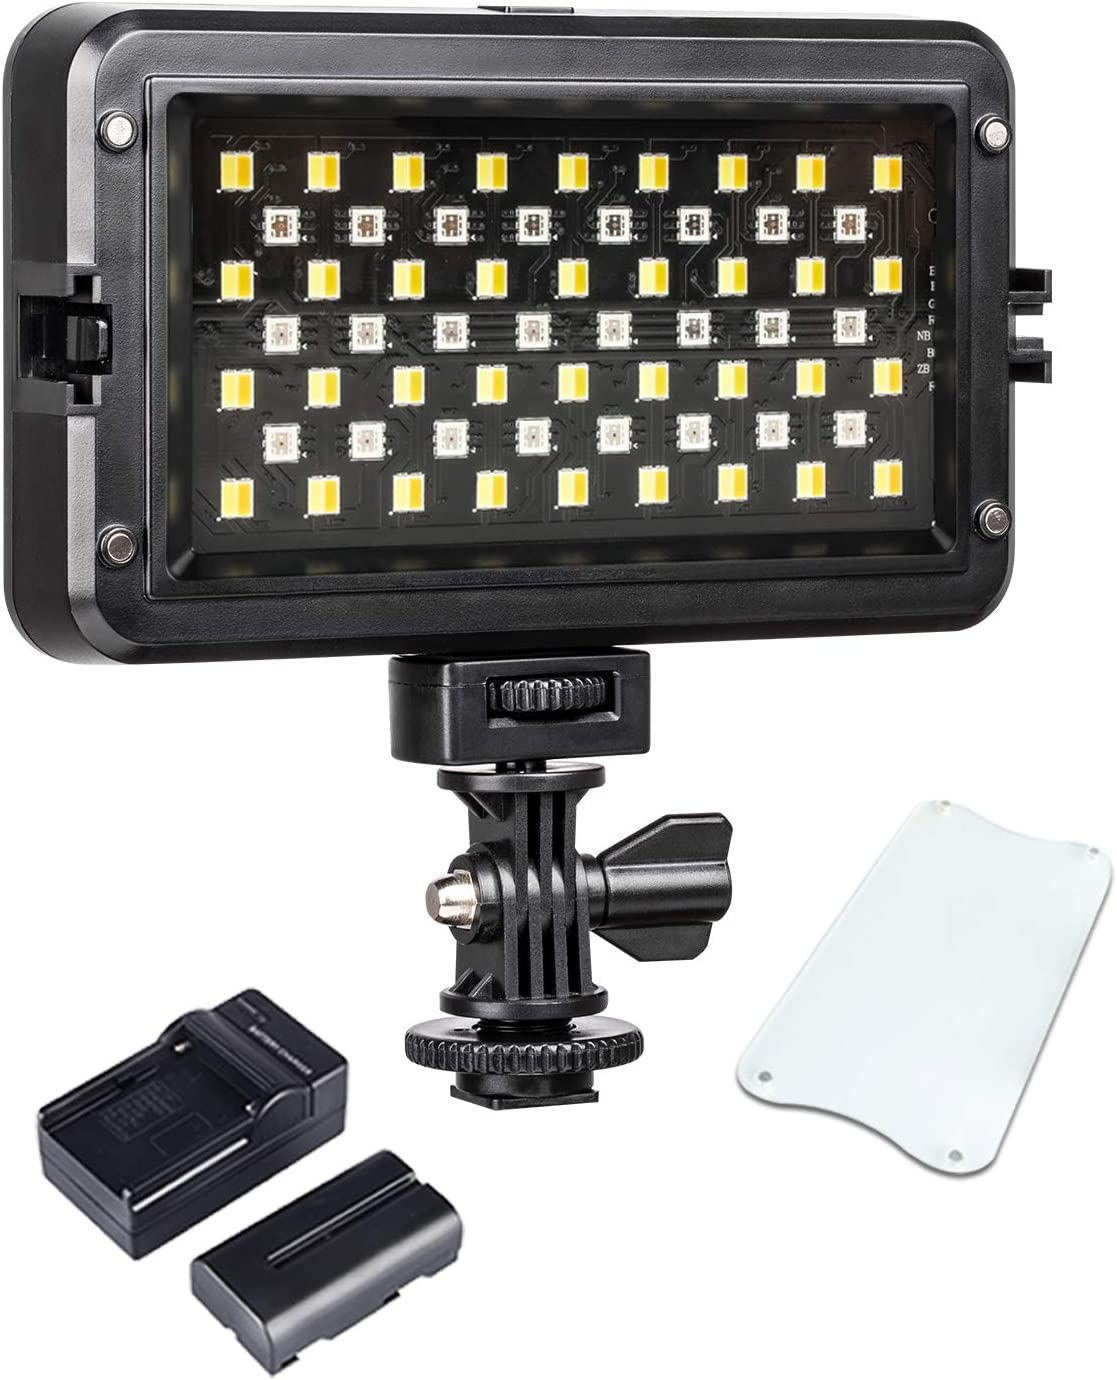 Led Video Light for Camera,Dimmable RB10 RGB Camera//Camcorder Video Light with Battery and Charger 2500-8500K CRI/≥95 Multi-Color Lighting Effect Adjustable